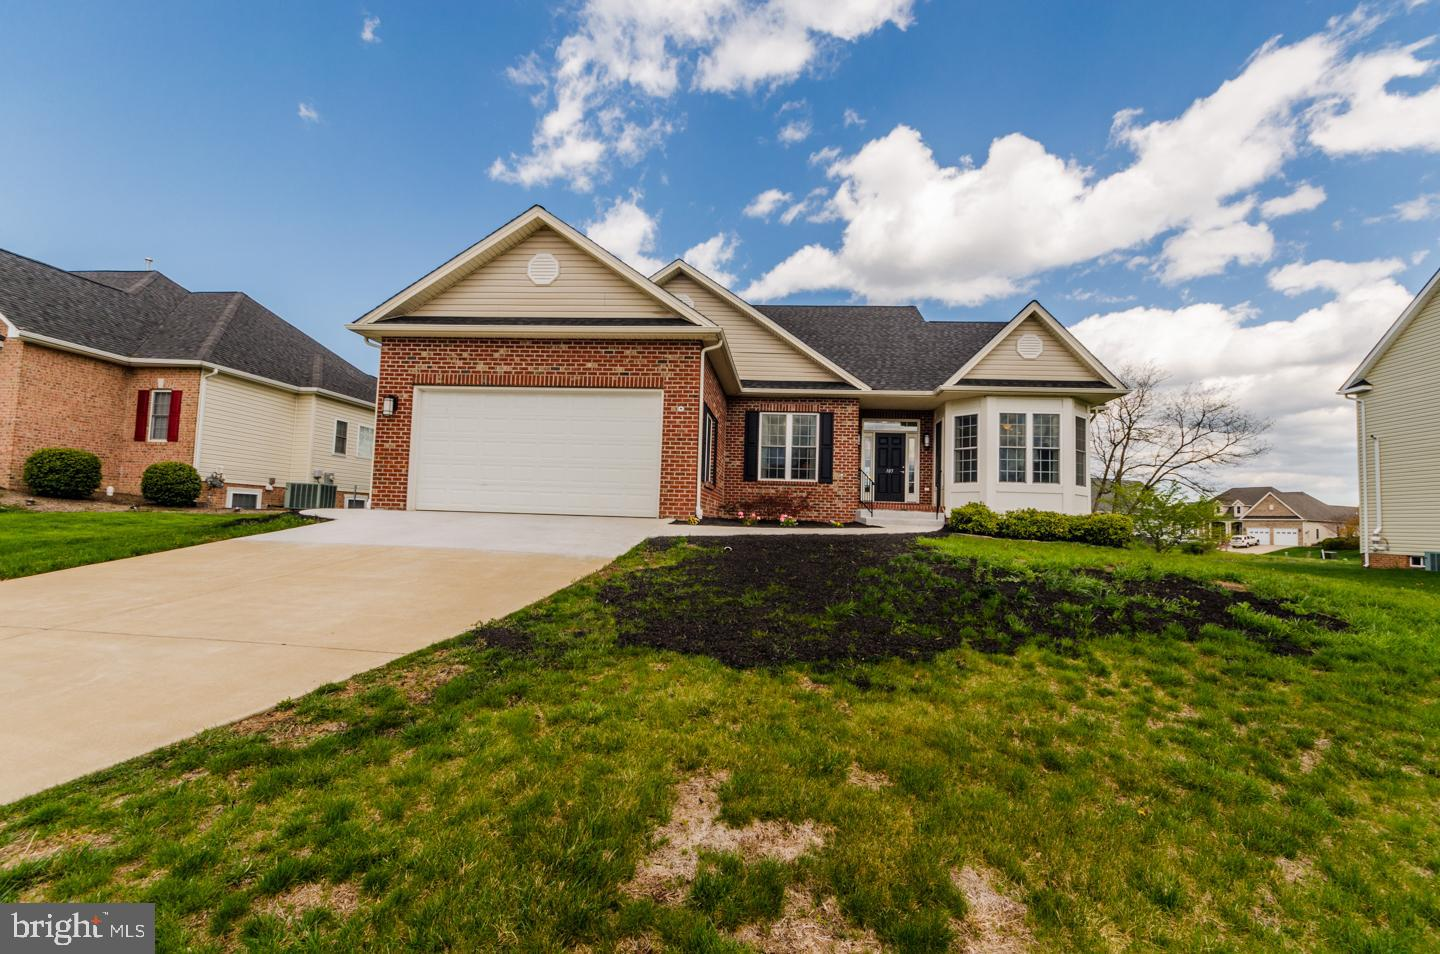 This beautiful home is ready to move it! As you enter the side walk you will pass by beautiful lands